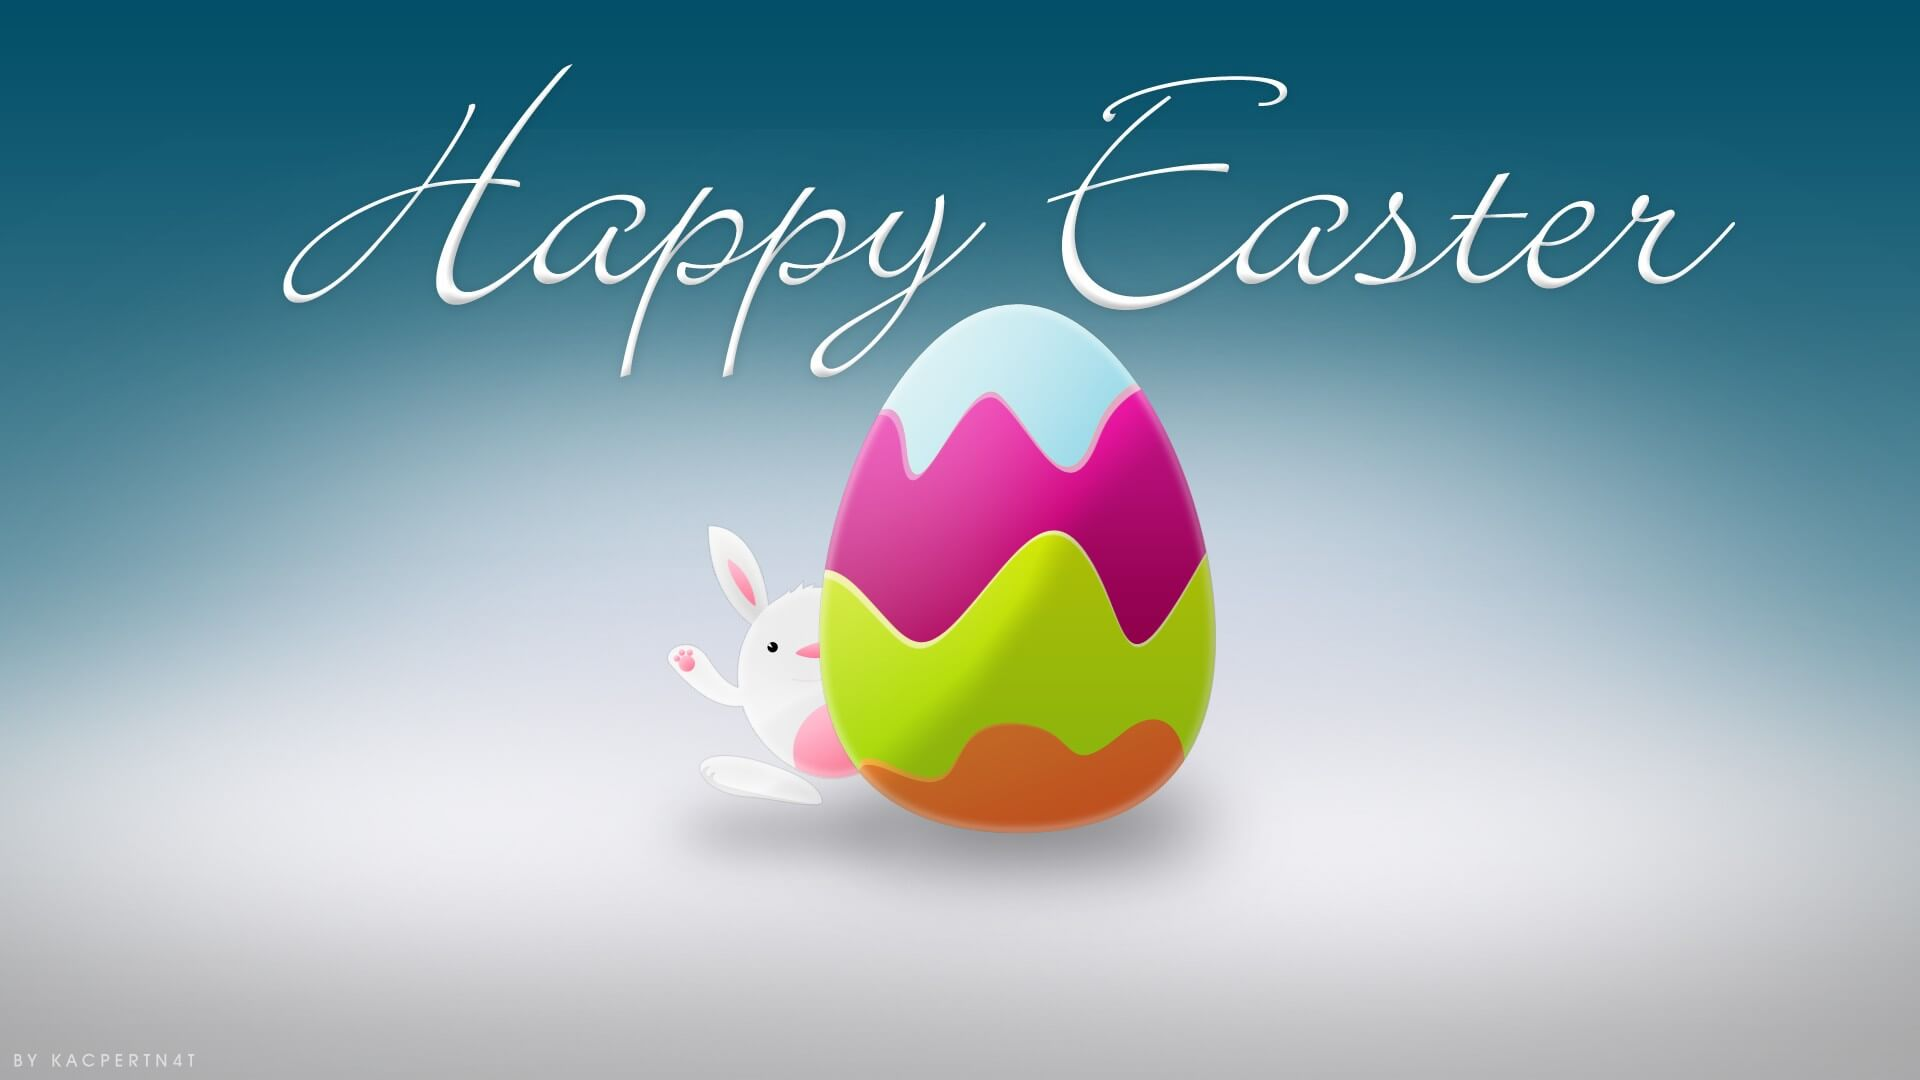 Happy easter bunny rabbit image m4hsunfo